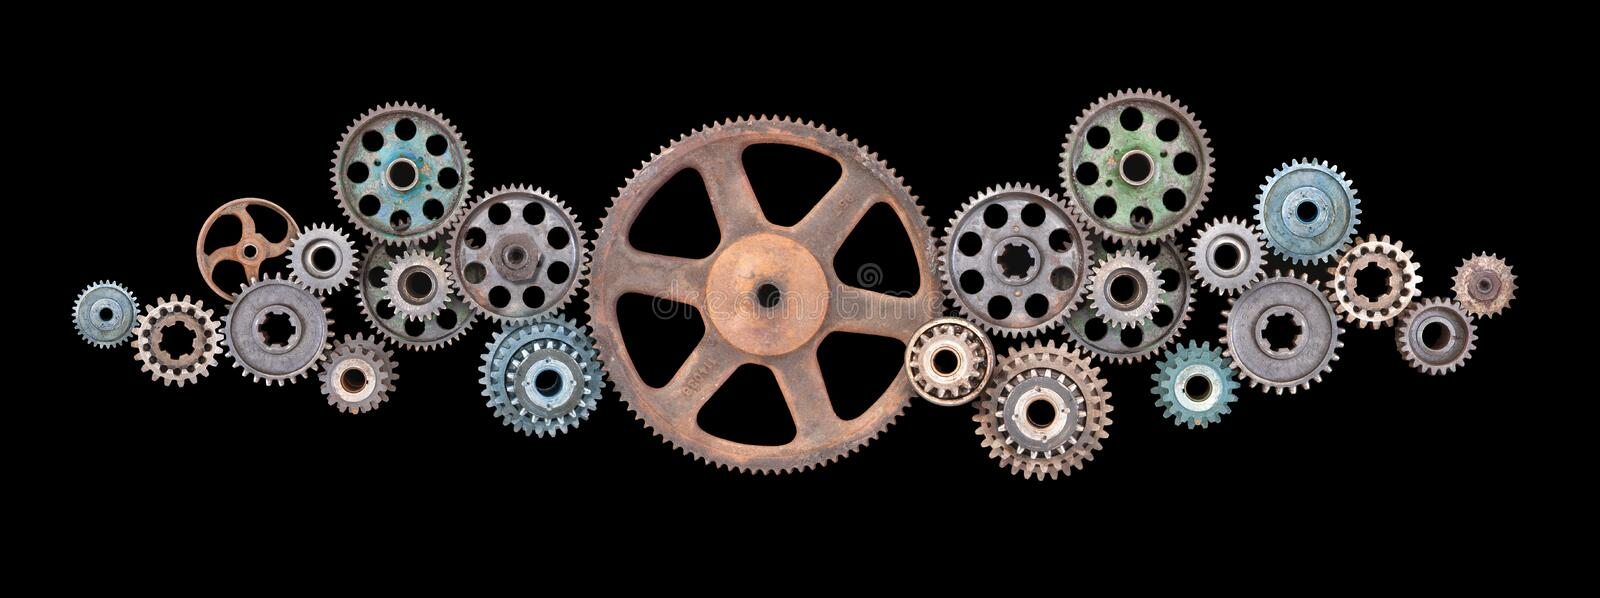 Download Retro Cogs Gears Technology Stock Photo - Image of industrial, manual: 25923582